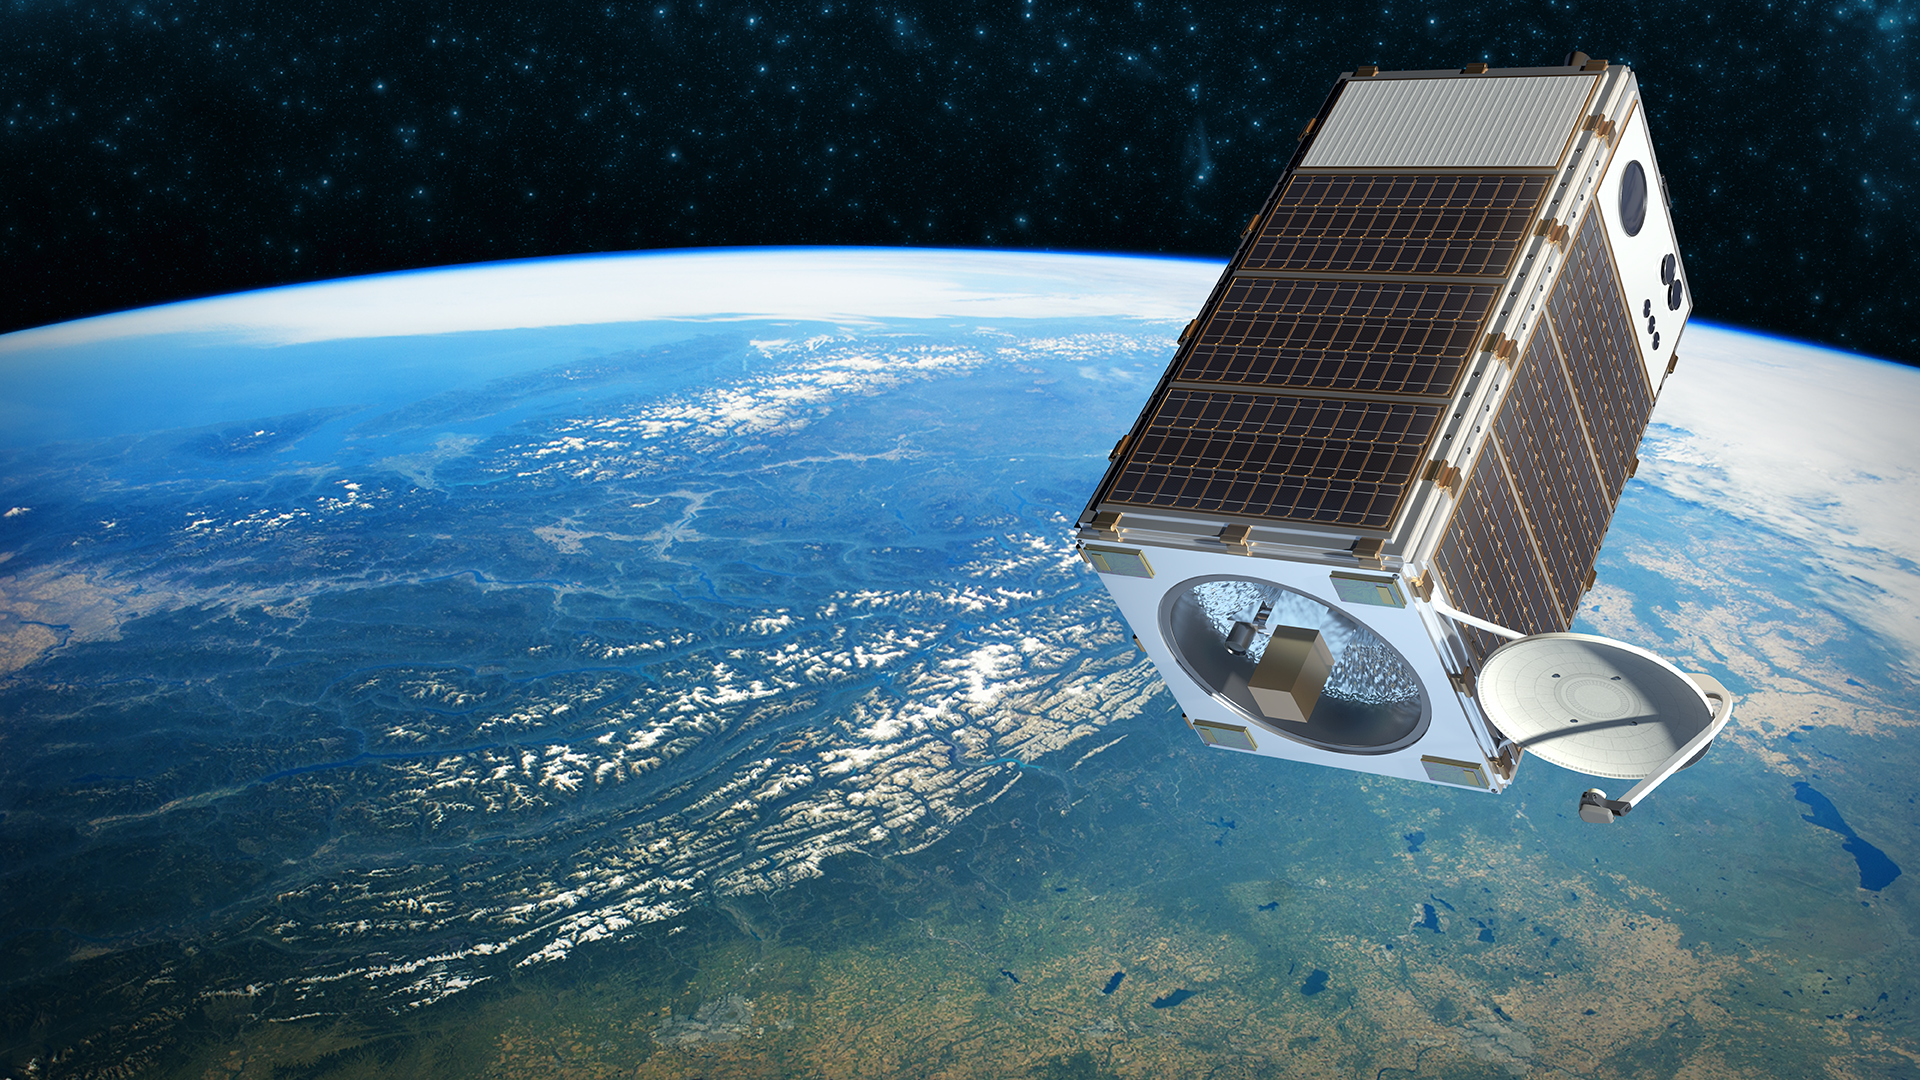 MethaneSAT (artist's impression pictured), a partnership led by the Environmental Defense Fund and launching in 2020 or 2021, will measure methane emissions from fifty major oil- and gas-producing regions around the world.